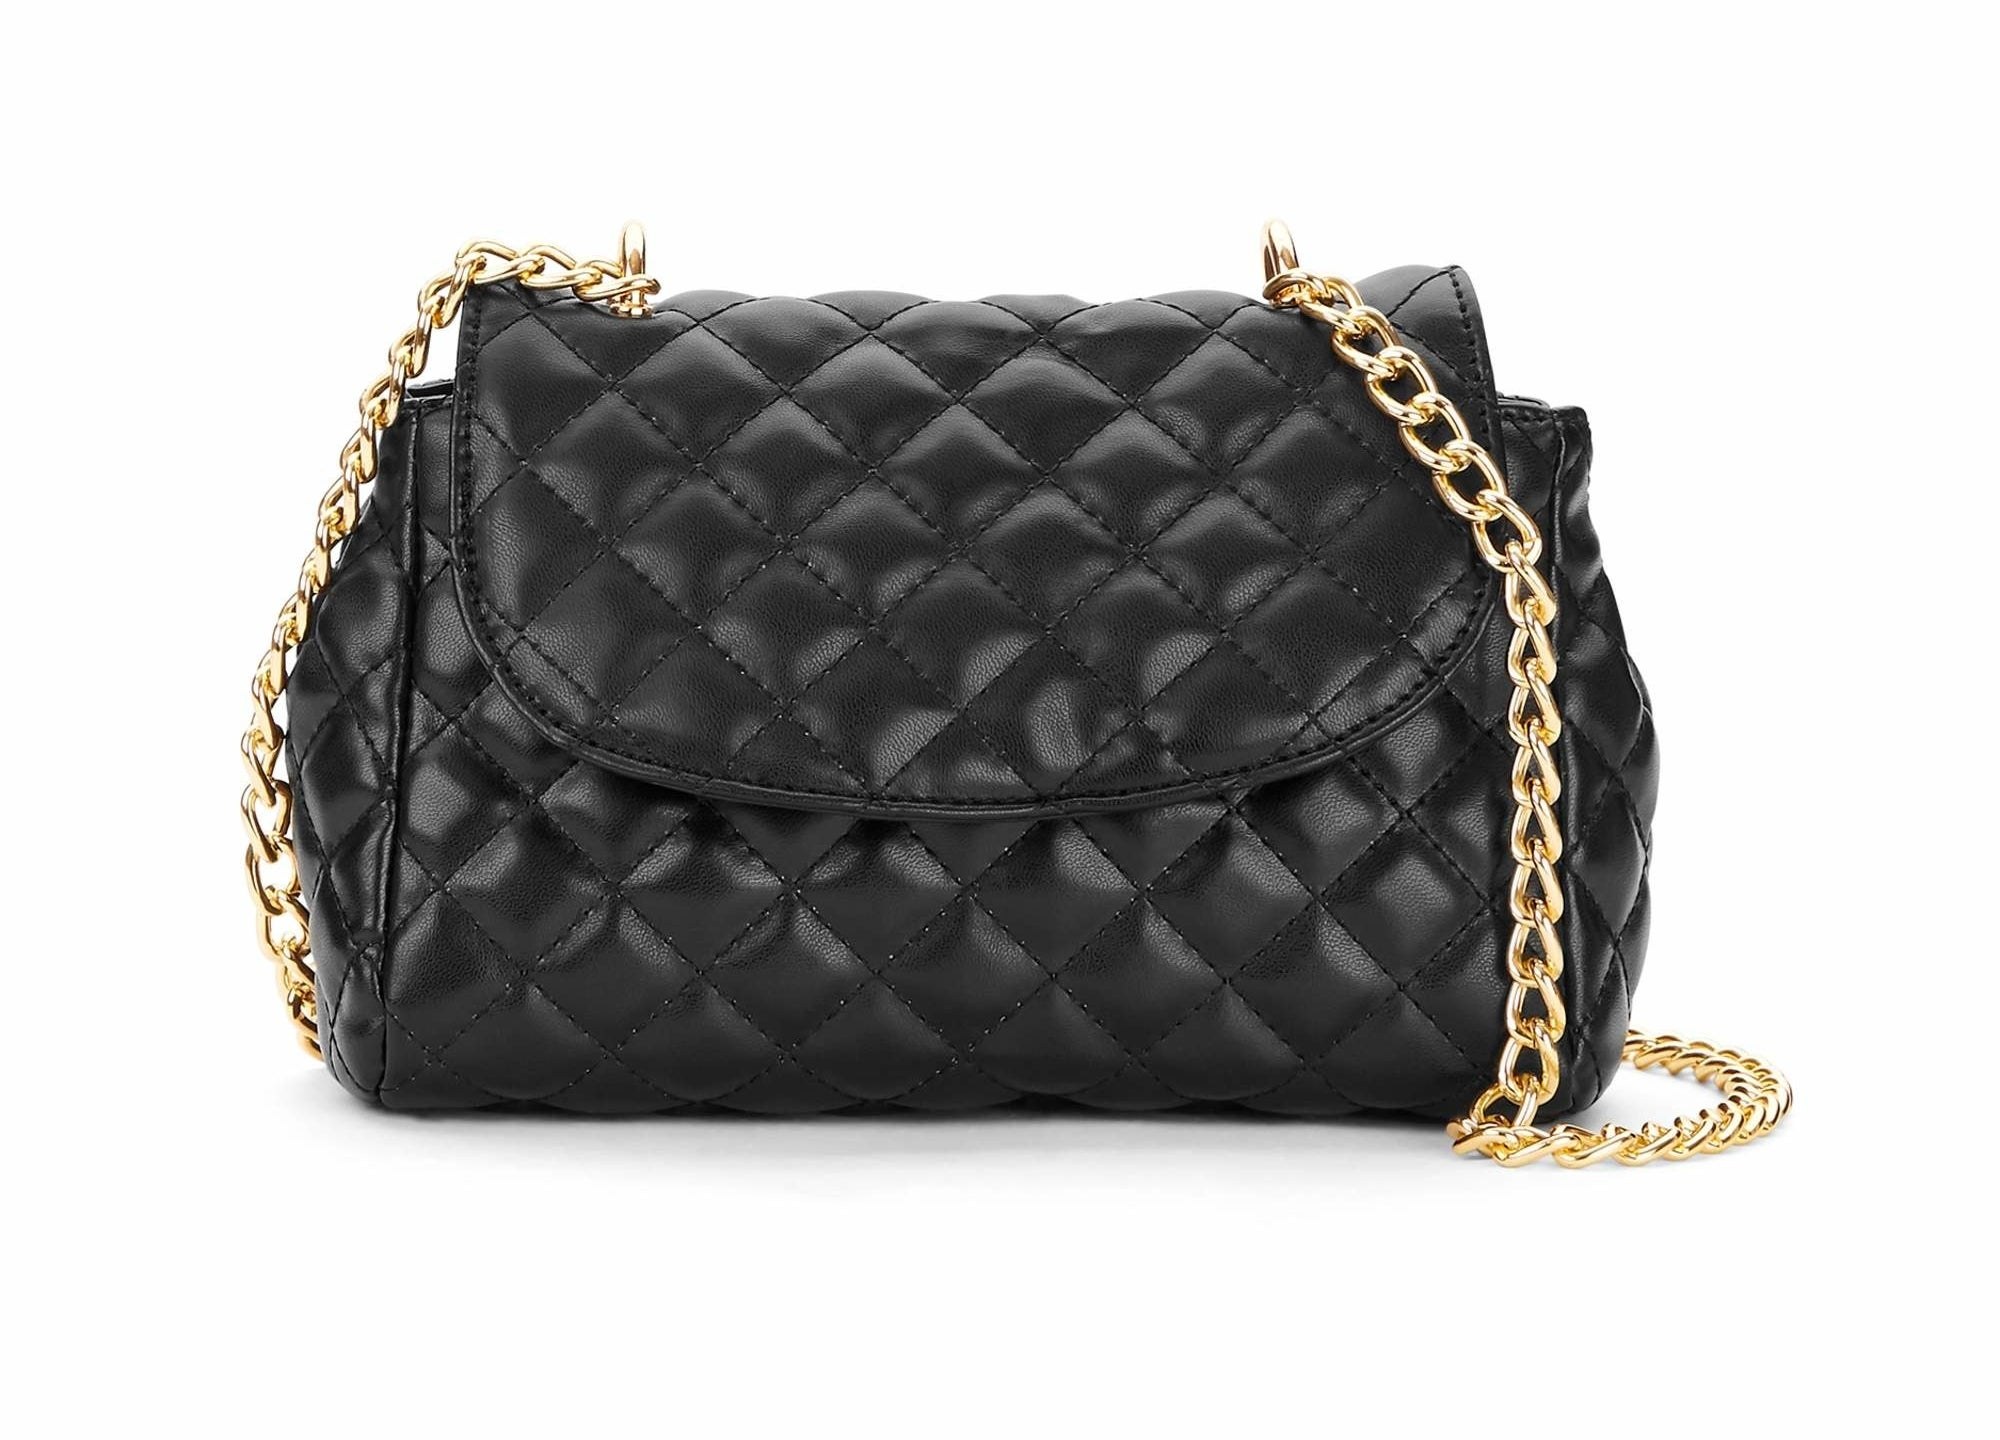 a black quilted bag with a fold over top and a gold chain